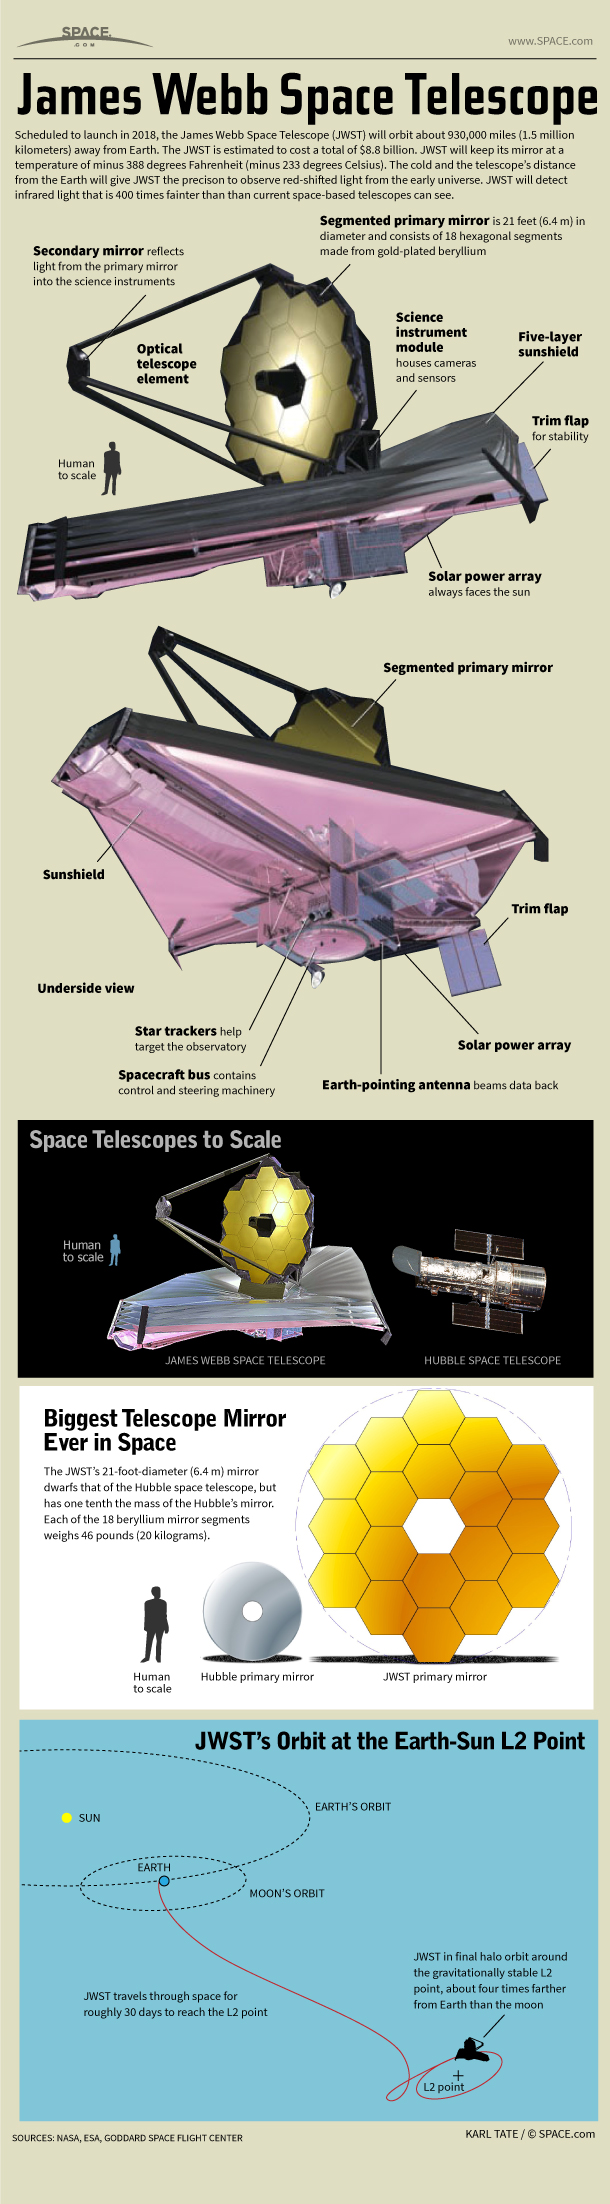 How NASA's James Webb Space Telescope Works (Infographic)